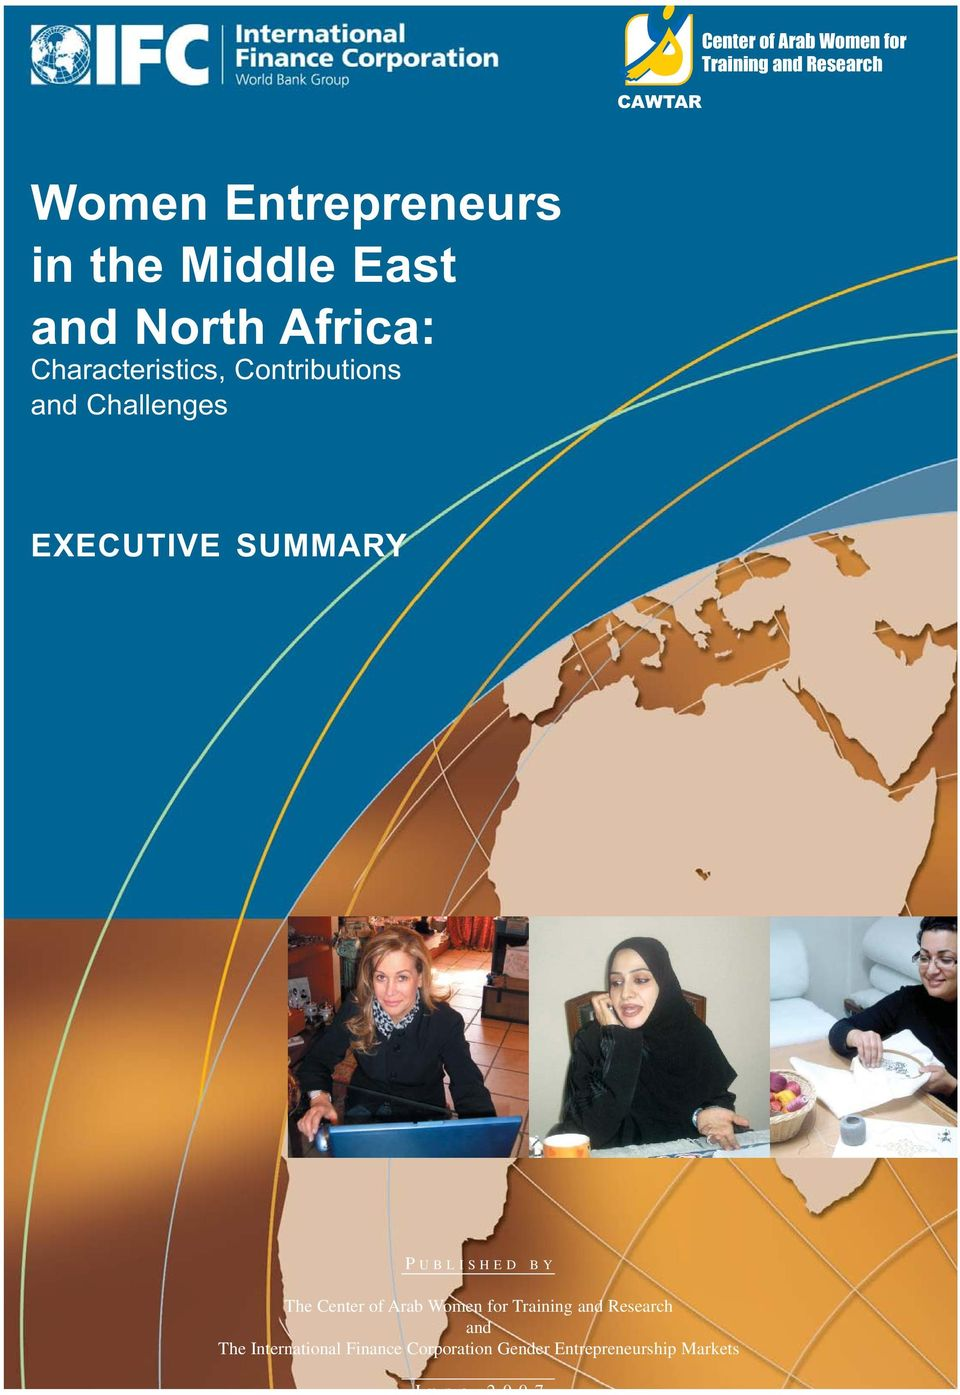 EXECUTIVE SUMMARY P UBLISHED BY The Center of Arab Women for Training and